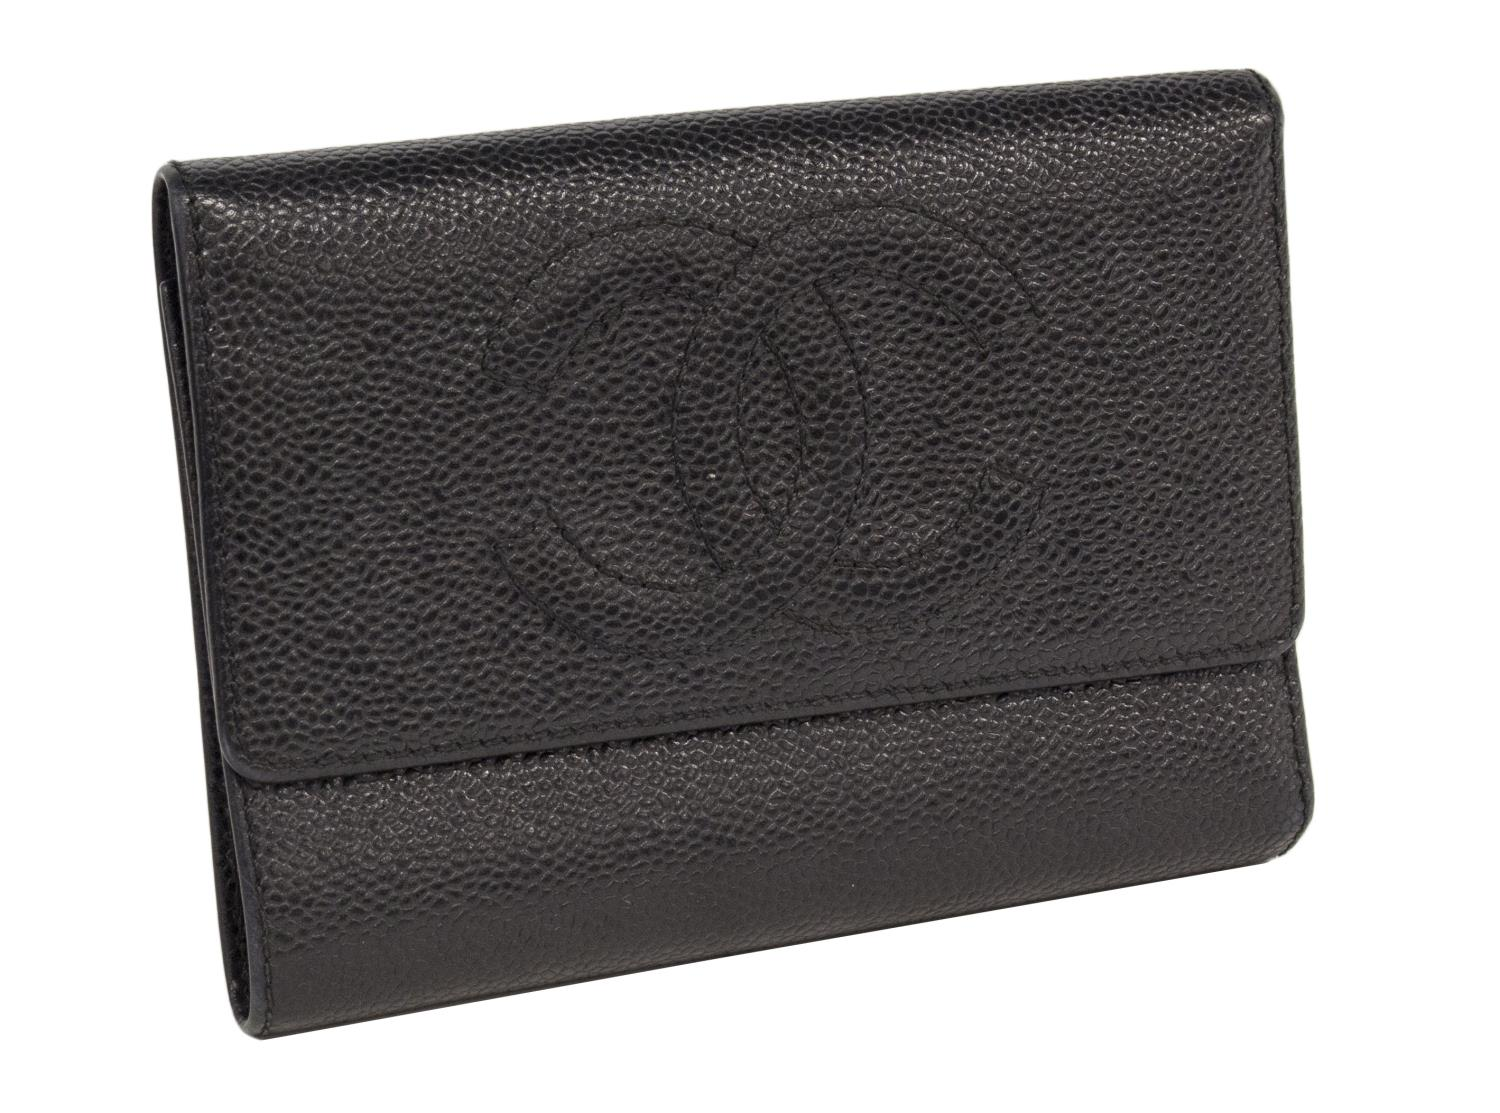 696df5e7f0c99a CHANEL BLACK CAVIAR LEATHER TRI-FOLD WALLET - August Estates Auction - Day  One -